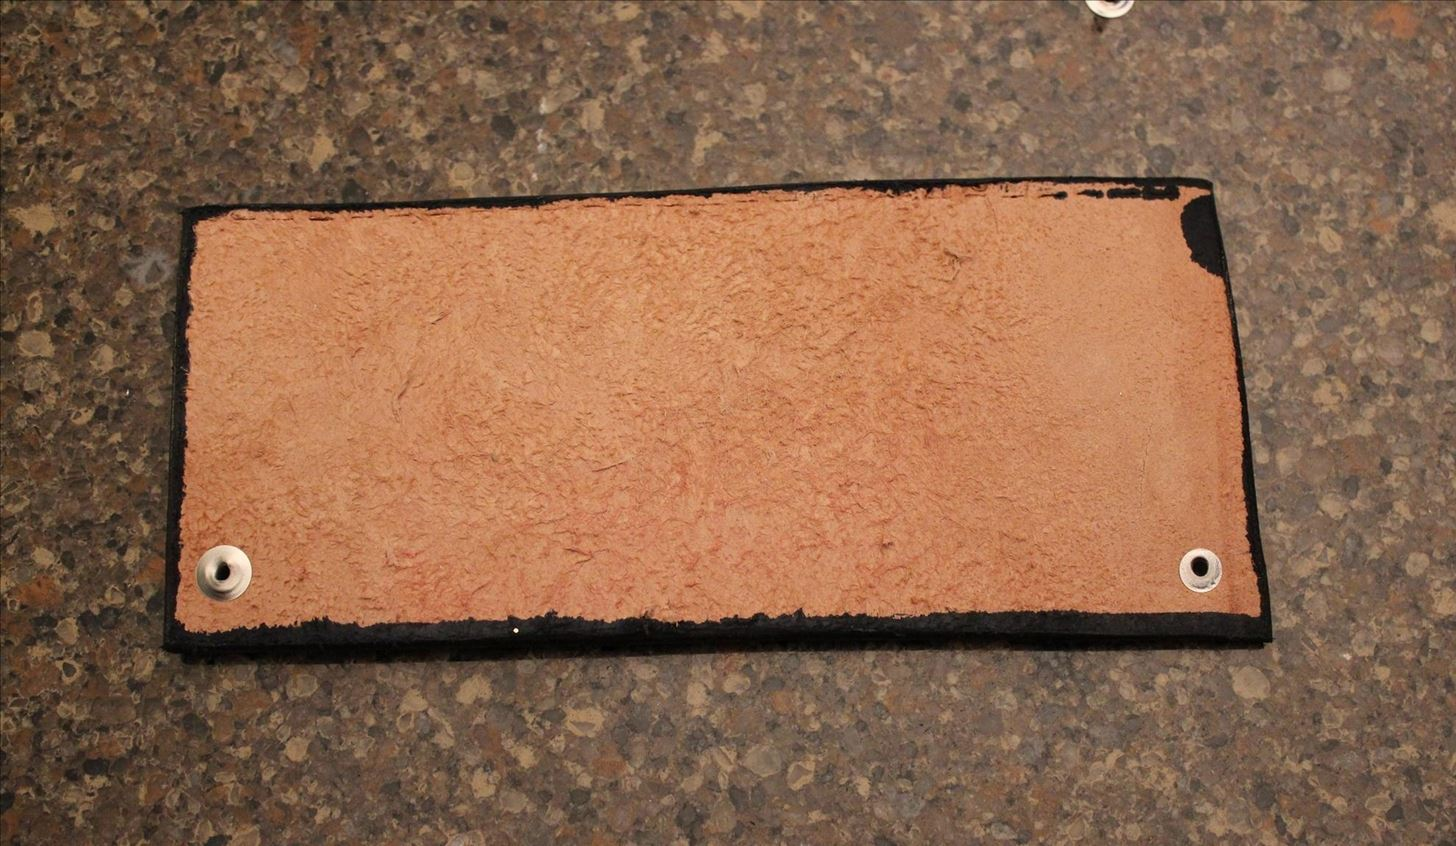 The Quick and Dirty Beginner's Guide to Steampunk Leatherworking, Part Two